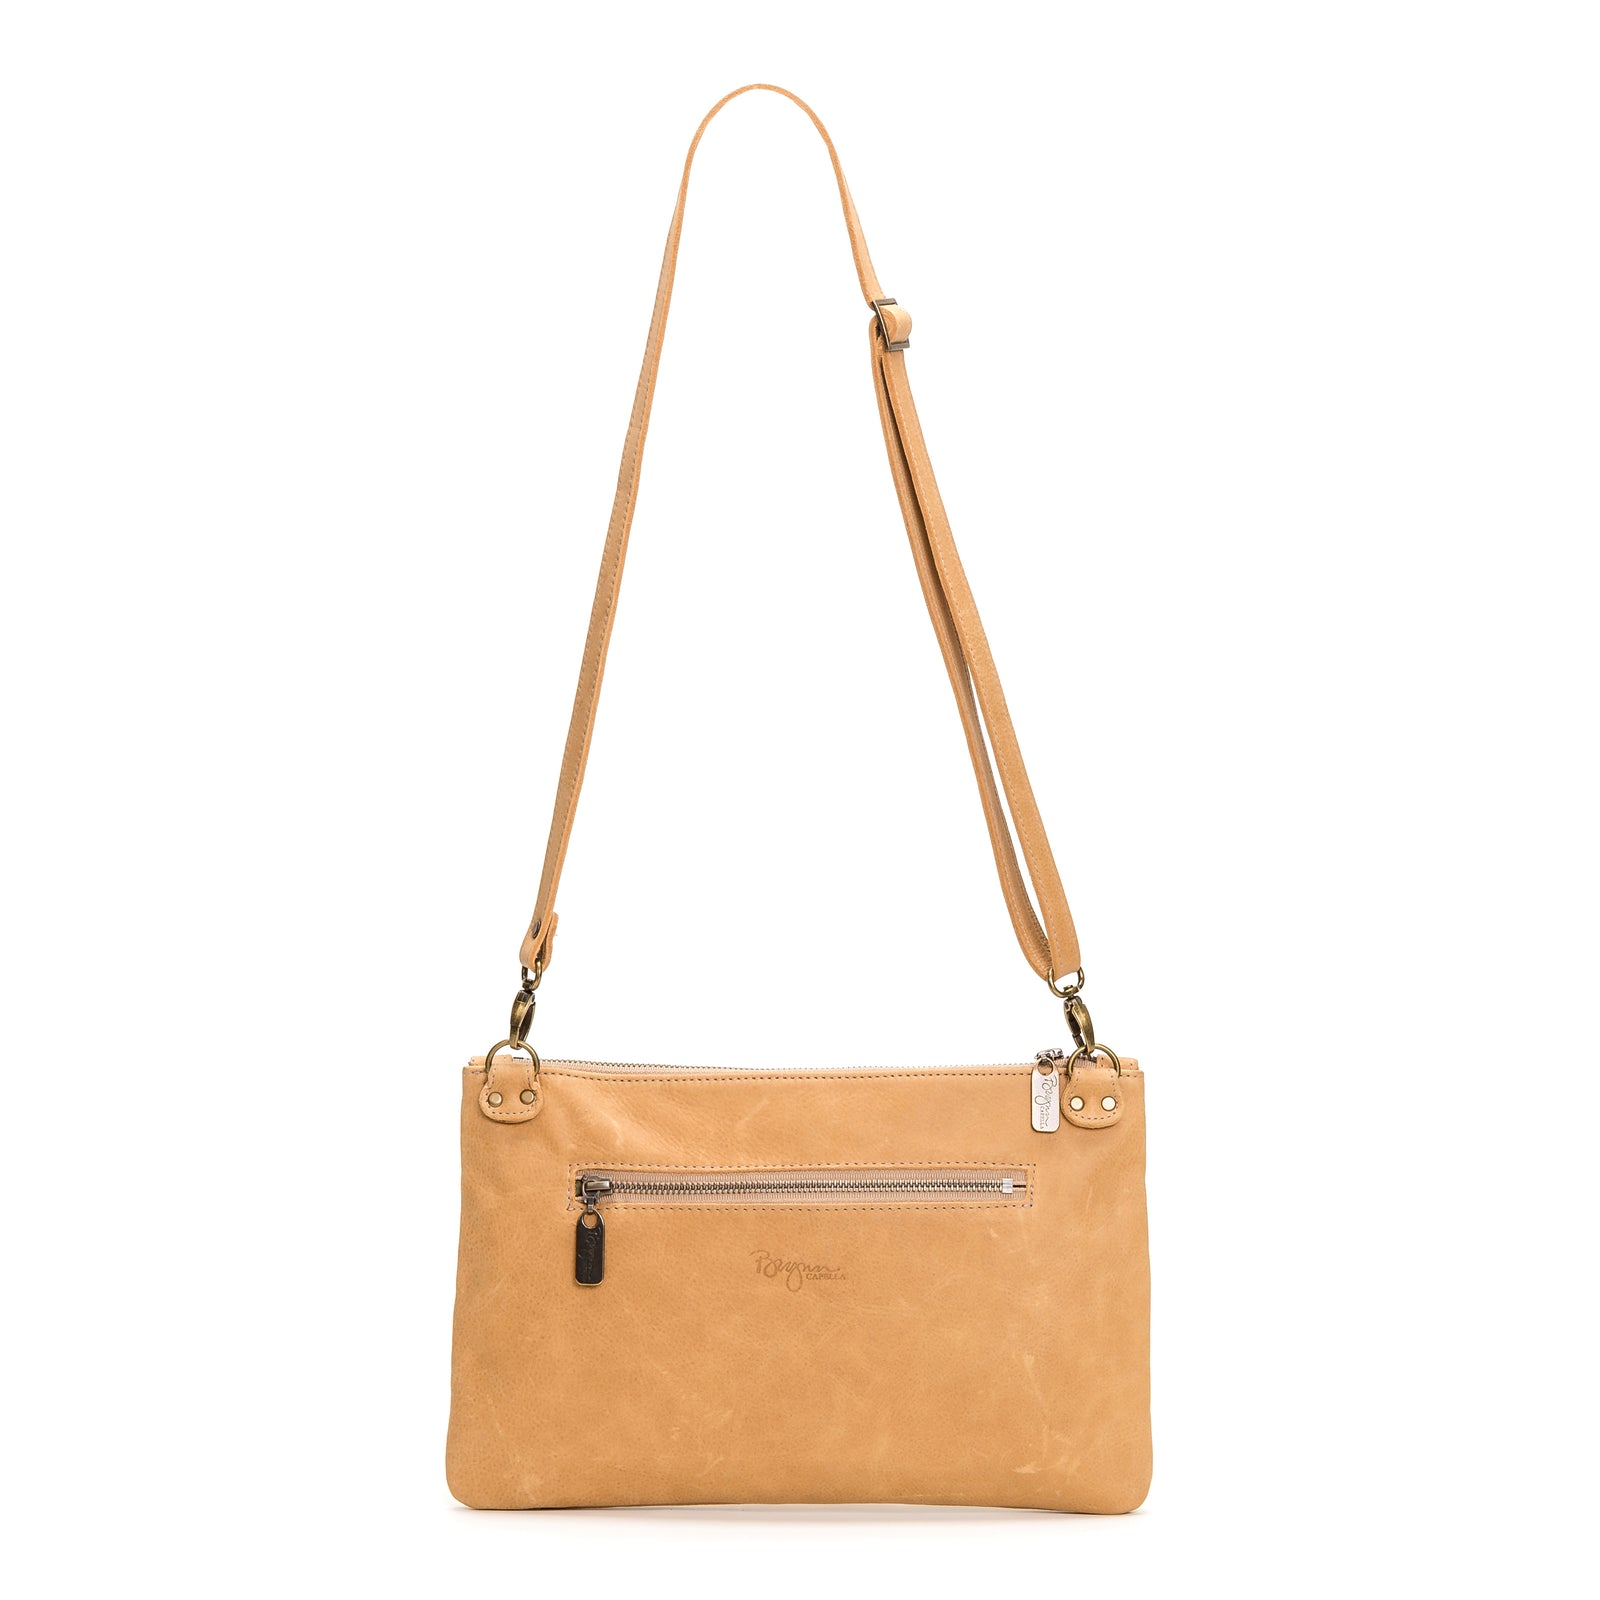 Nikki Clutch/Crossbody - Gold Dust - Brynn Capella, Small Crossbody